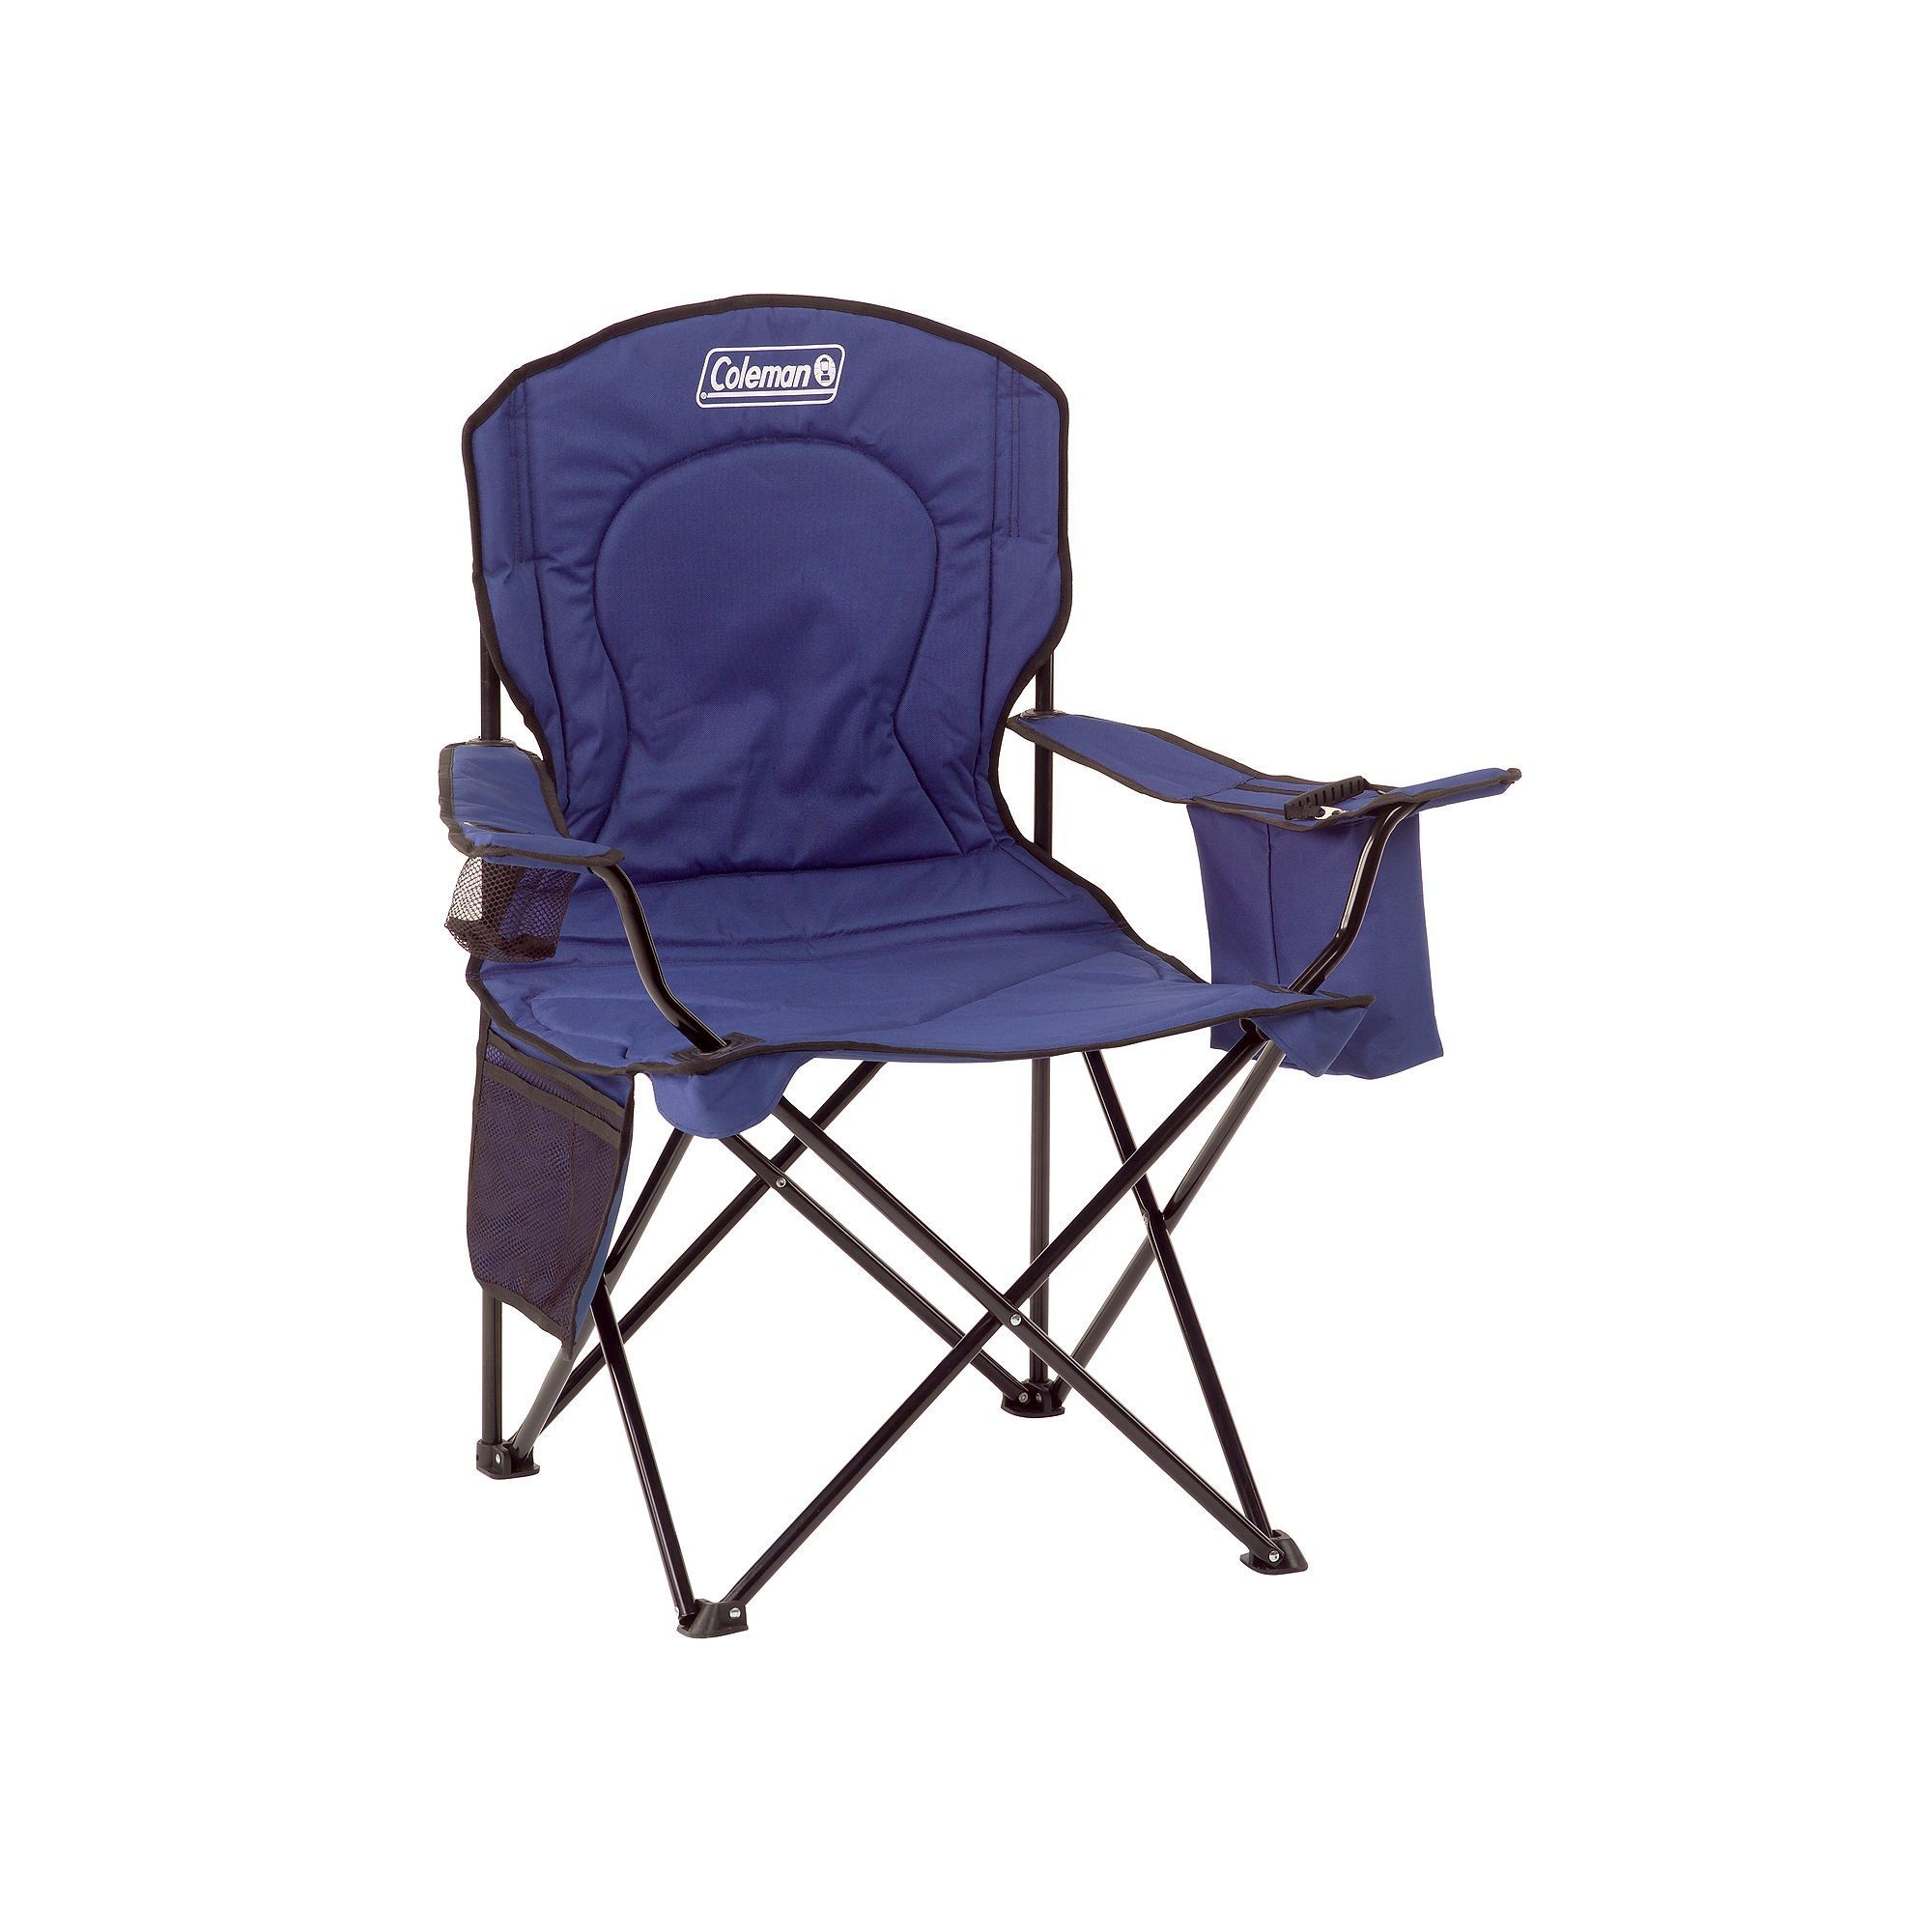 Outdoor Coleman Oversize Quad Chair with Cooler  BlueOutdoor Coleman Oversize Quad Chair with Cooler  Red   Products. Pantone Folding Chairs For Sale. Home Design Ideas